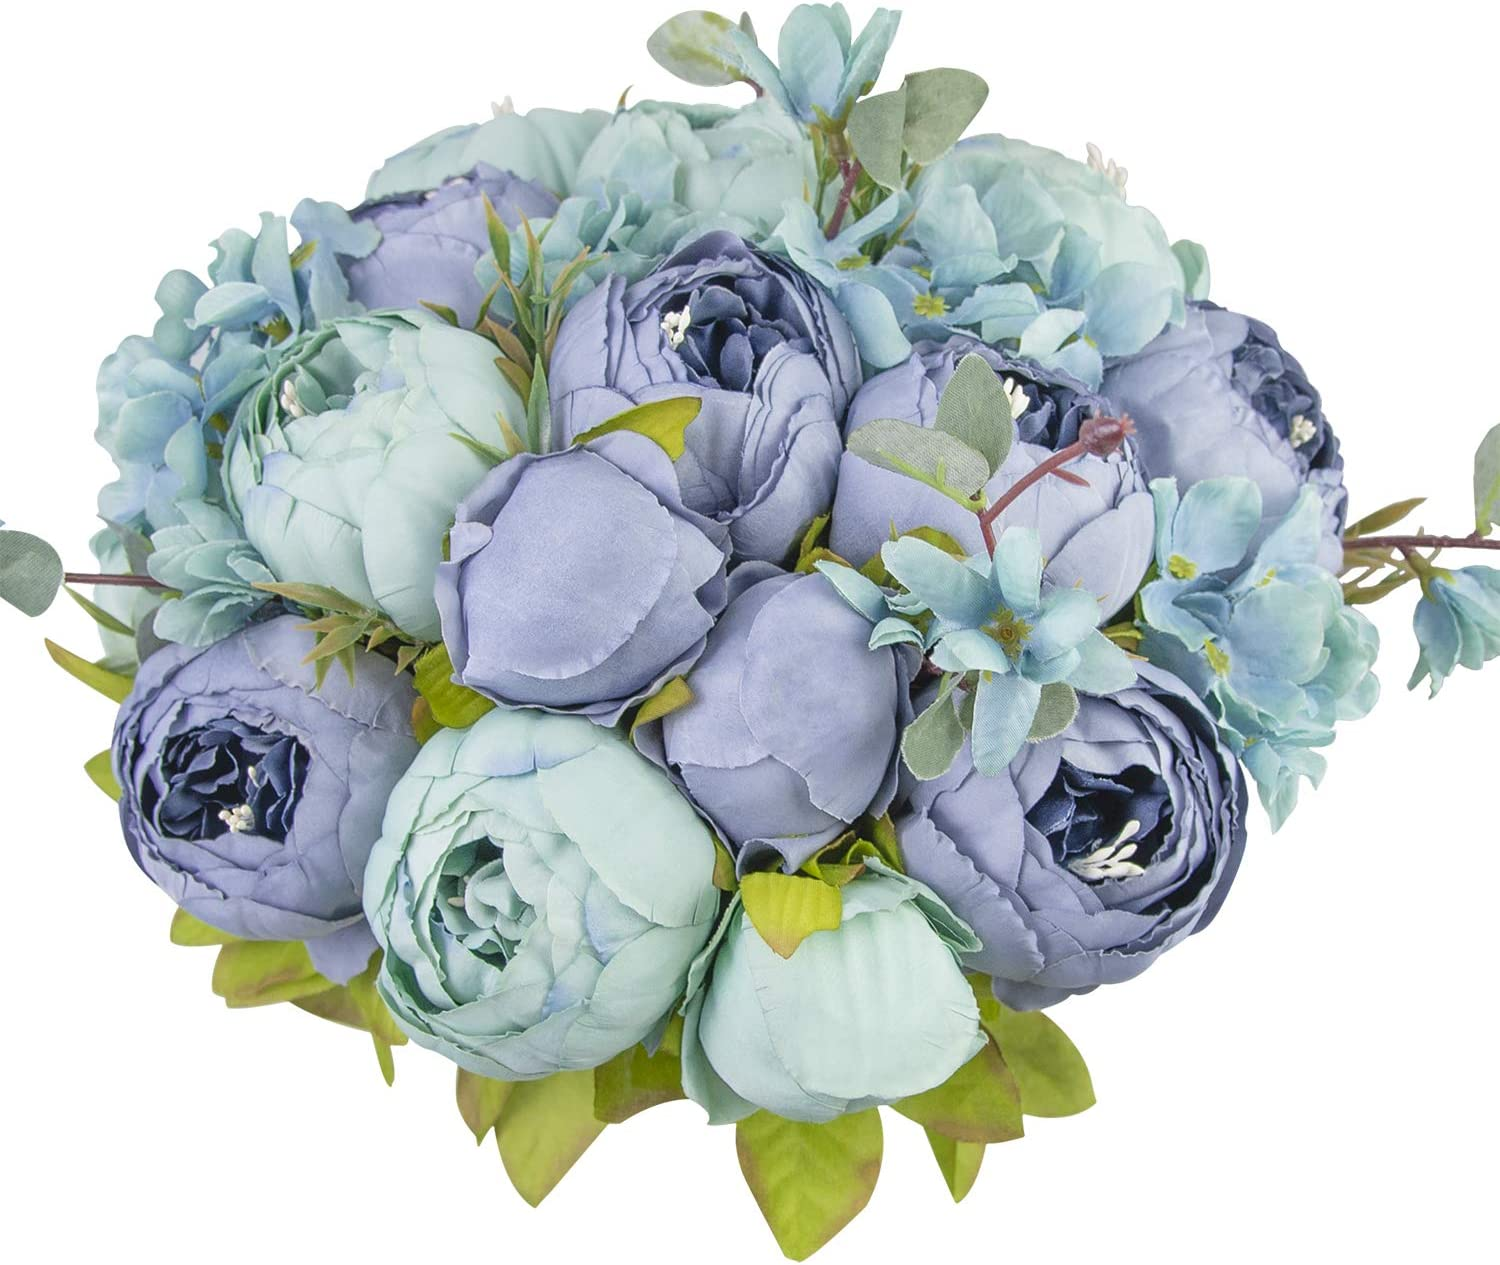 Amazon Com Huahuashijie Vintage Artificial Peonies Silk Peony Flowers Bouquet For Wedding Bridal Home Décor Beautiful Floral Centerpiece Arrangement Decoration With 2 Bouquets Mixed Blue Home Kitchen